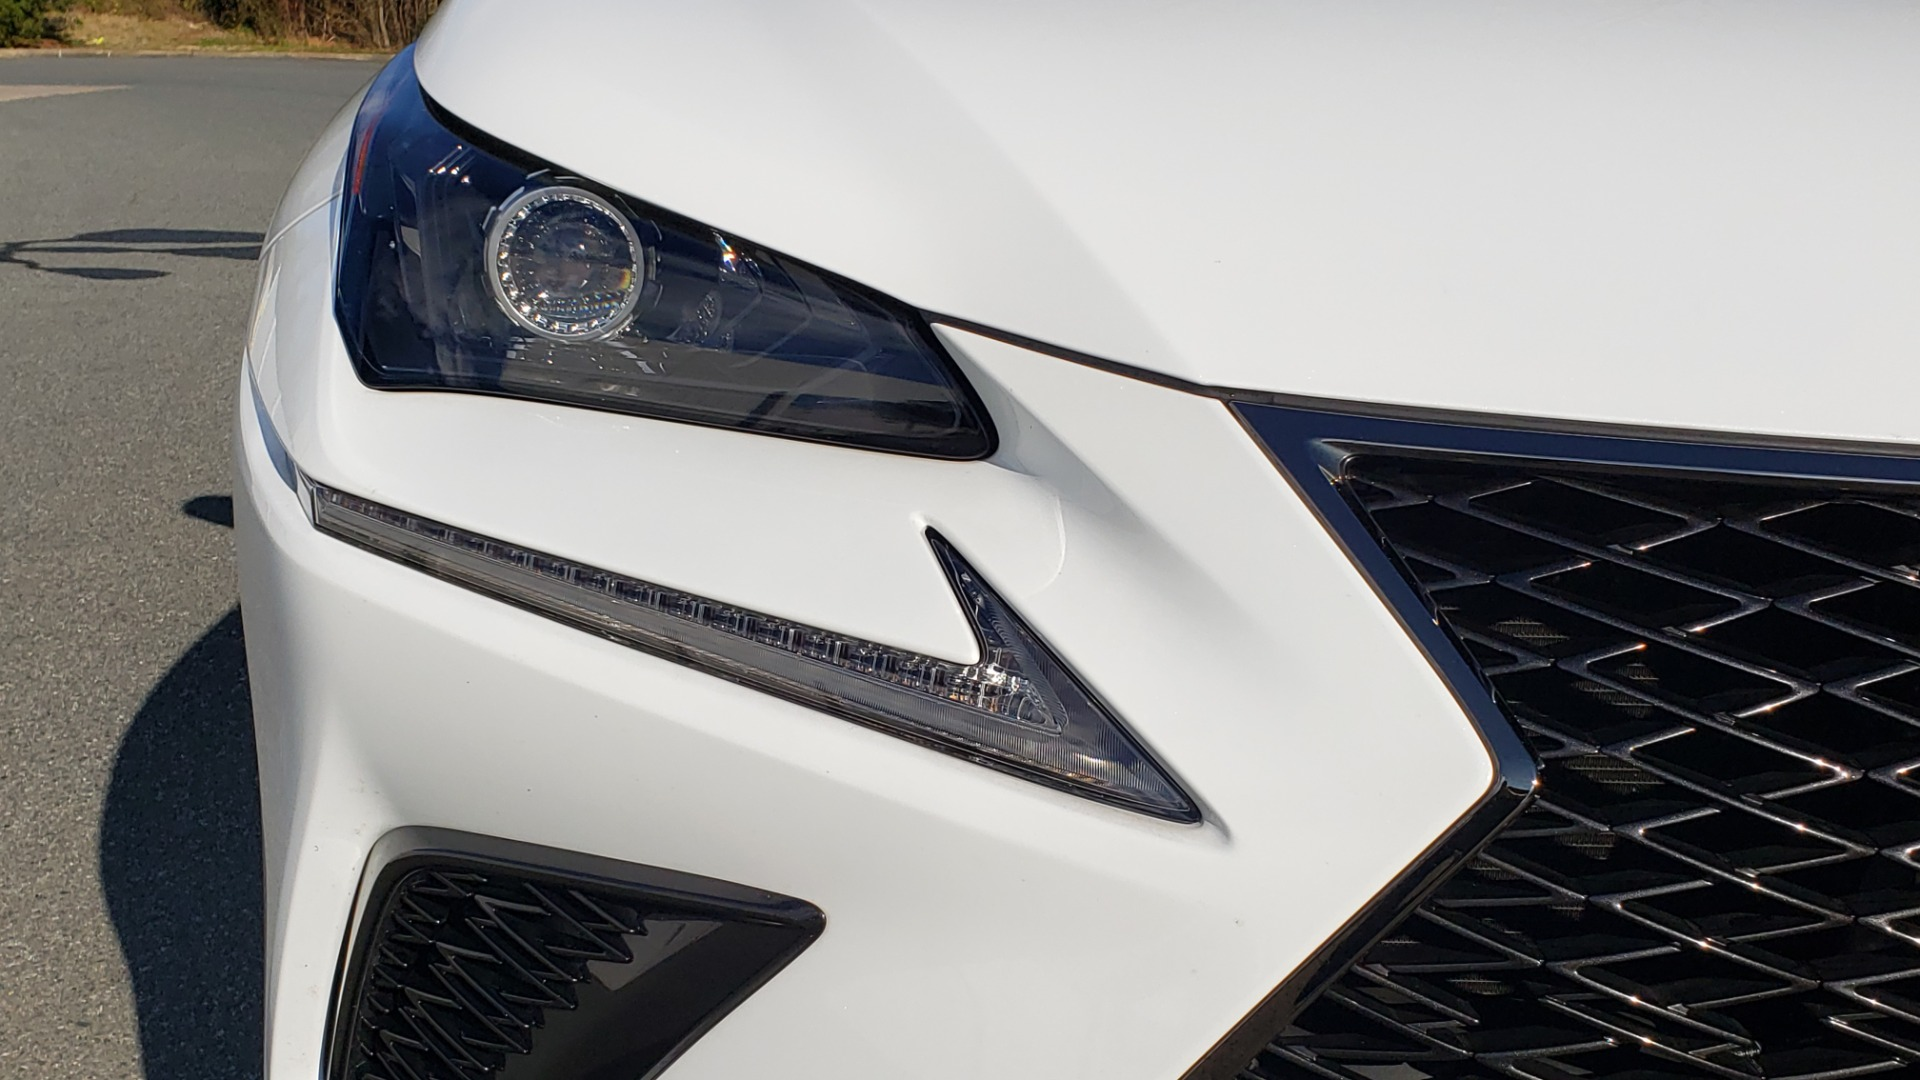 Used 2019 Lexus NX 300 F-SPORT / 2.0L TURBO / LEATHER / 18IN WHEELS / REARVIEW for sale Sold at Formula Imports in Charlotte NC 28227 26